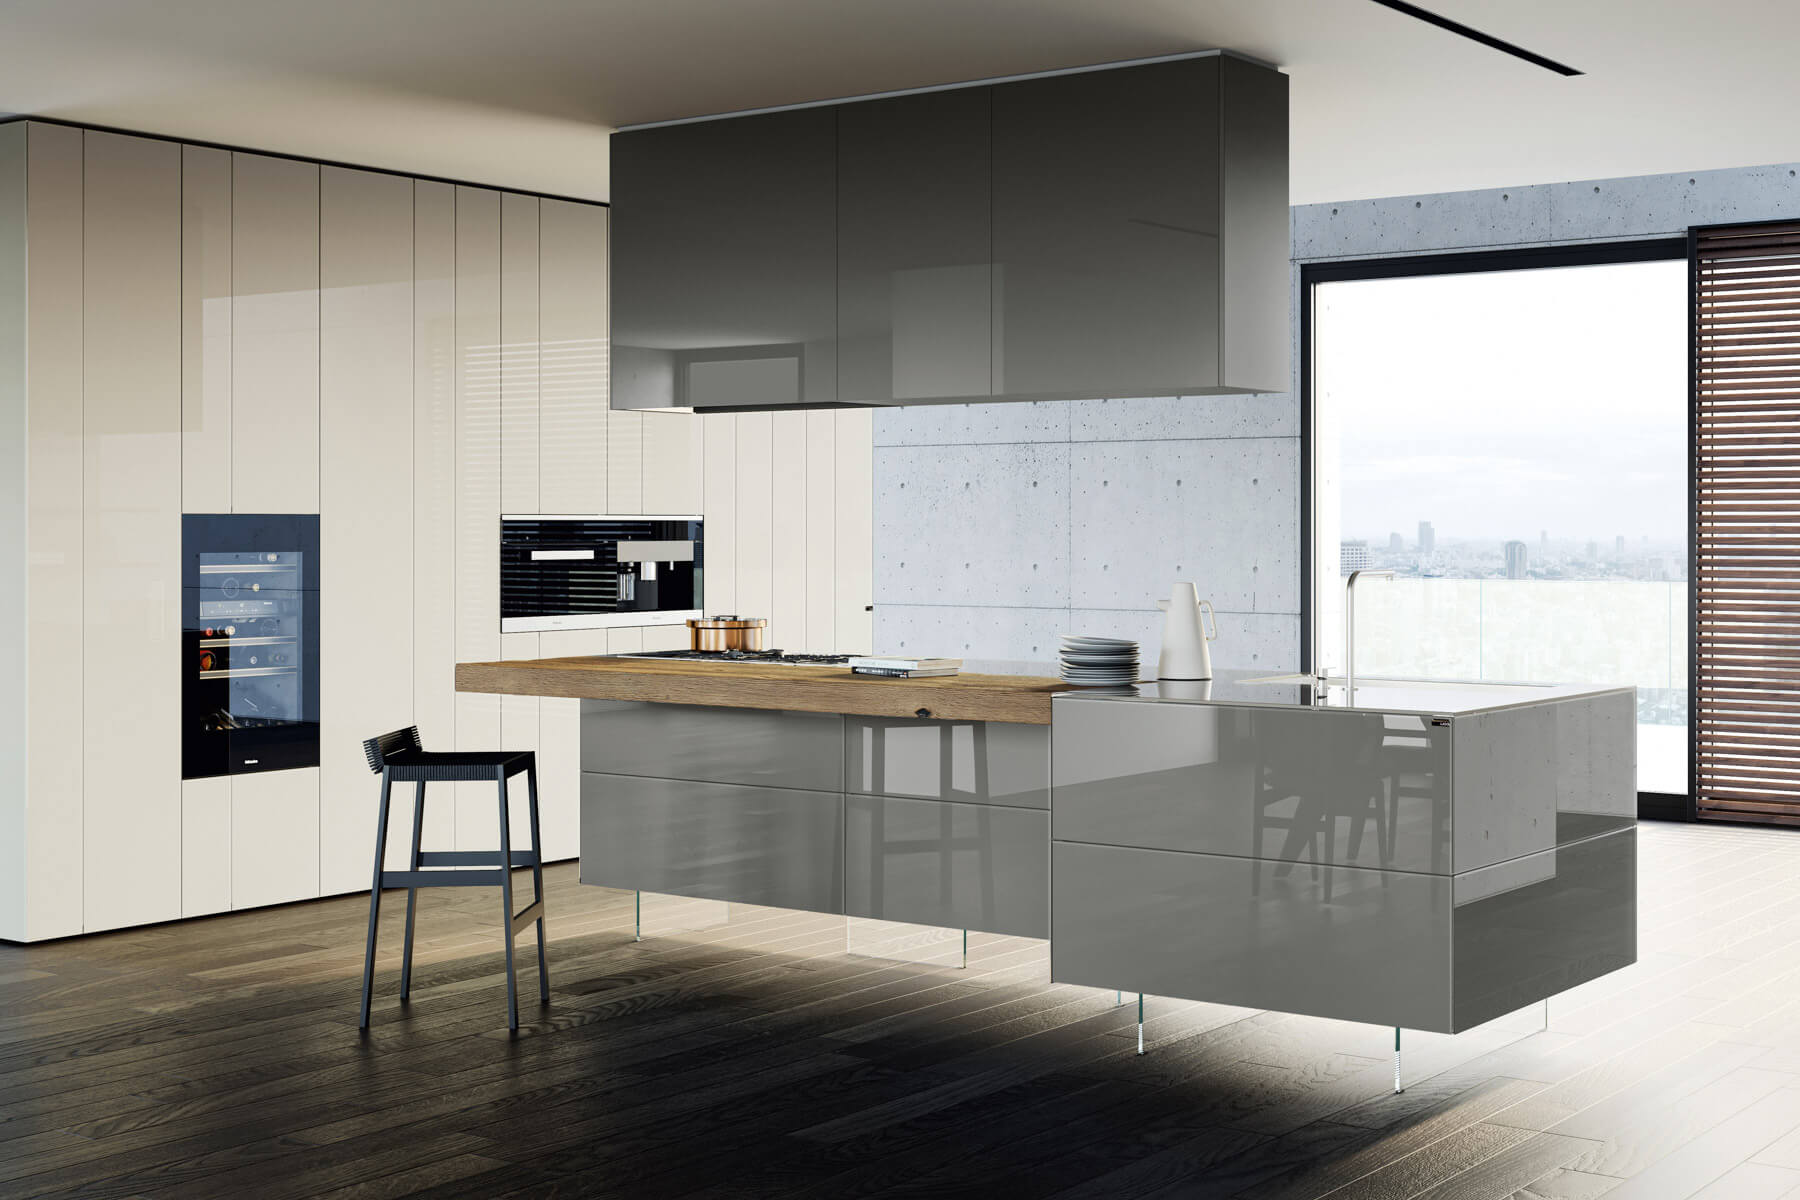 36e8_kitchen_glass